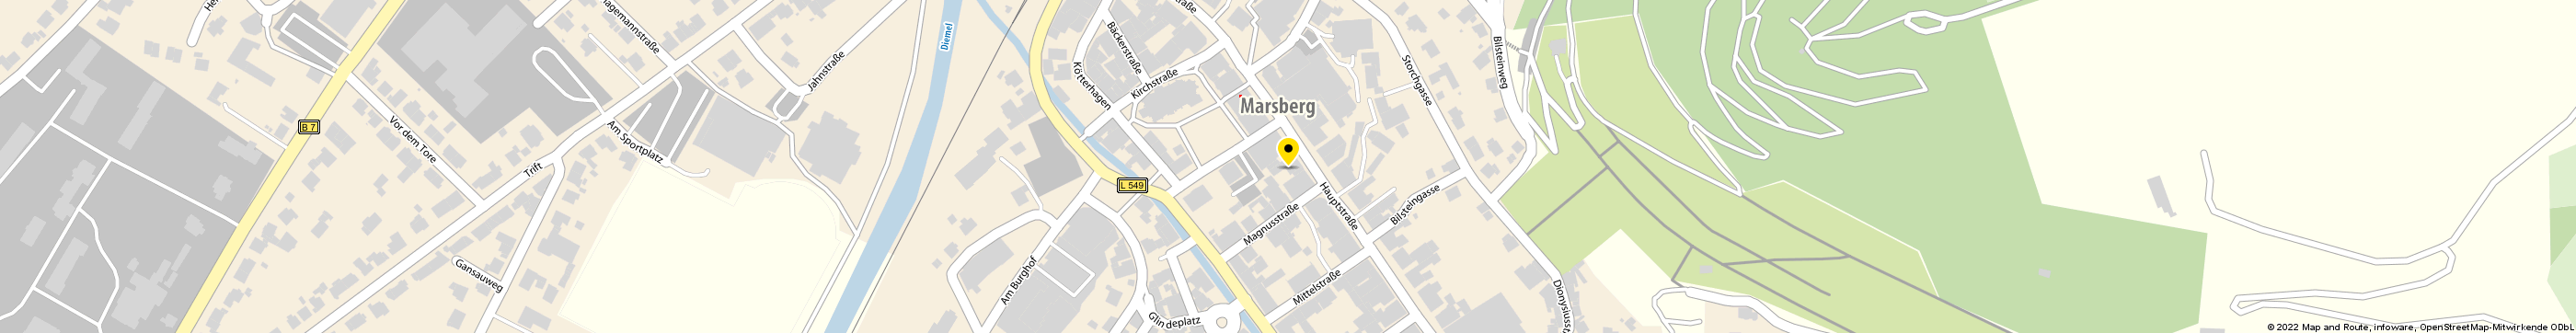 Immobilien-Center Marsberg in Marsberg Karte